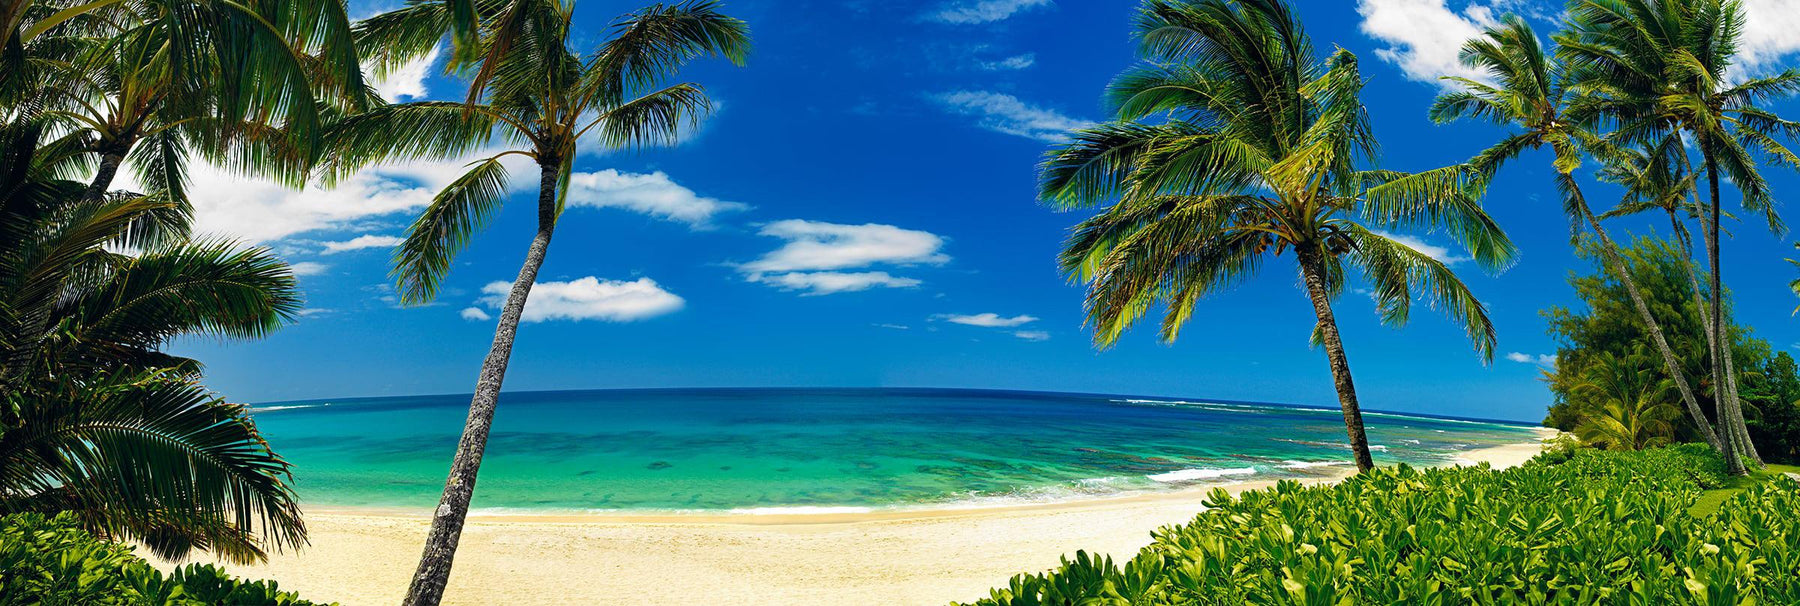 Looking through palm trees and foliage to the ocean and shore of Tunnels Beach Hawaii